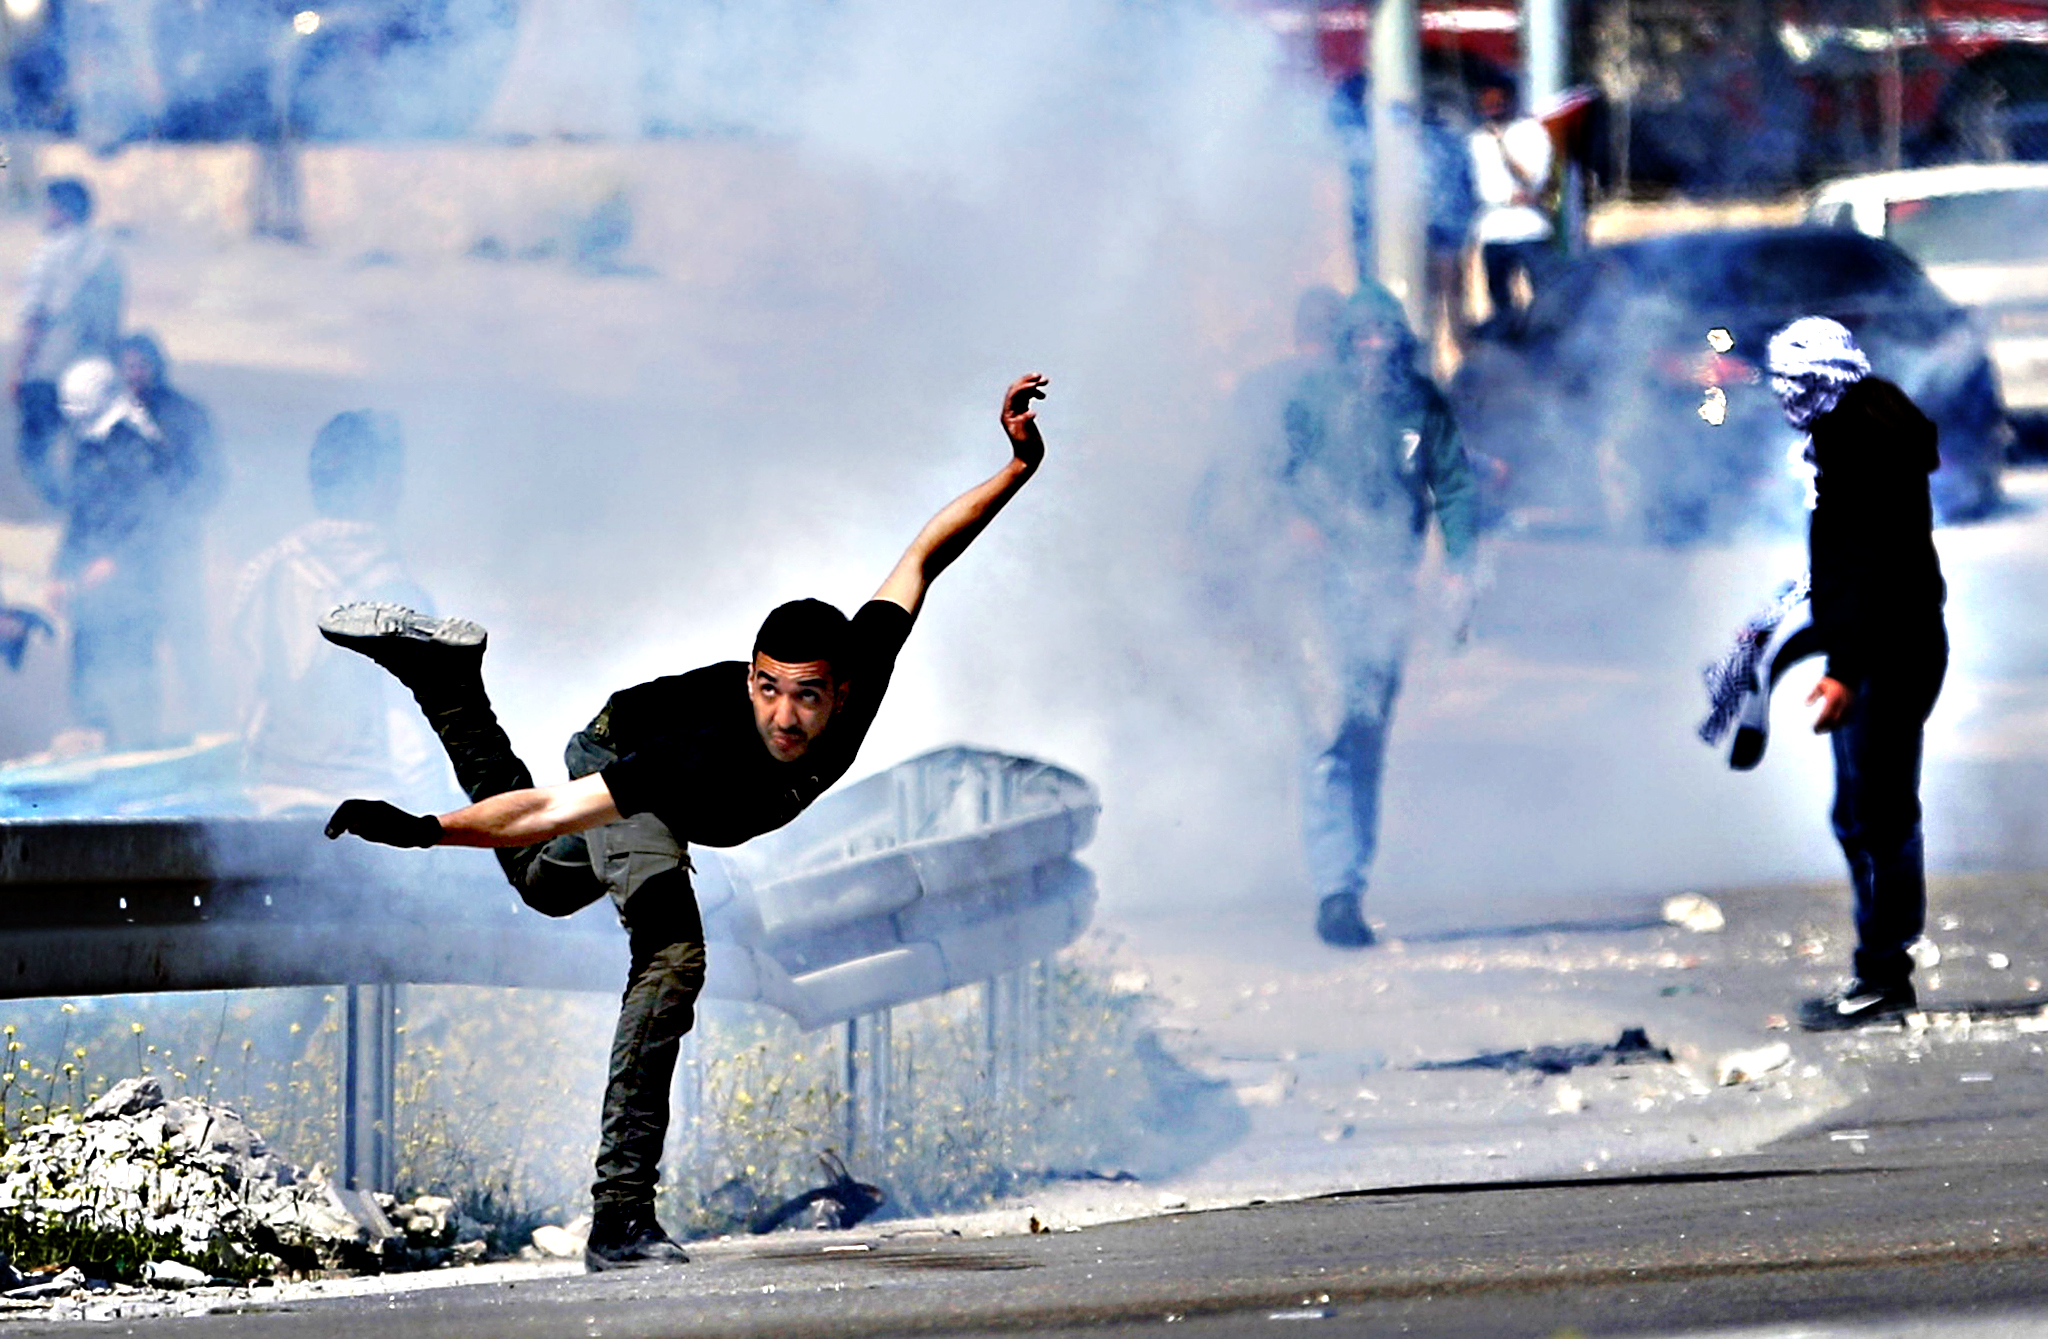 A Palestinian protester returns a tear gas canister fired by Israeli troops during a protest against what Palestinians say is land confiscation by Israel for Jewish settlements, near the West Bank town of Abu Dis near Jerusalem March 17, 2015.